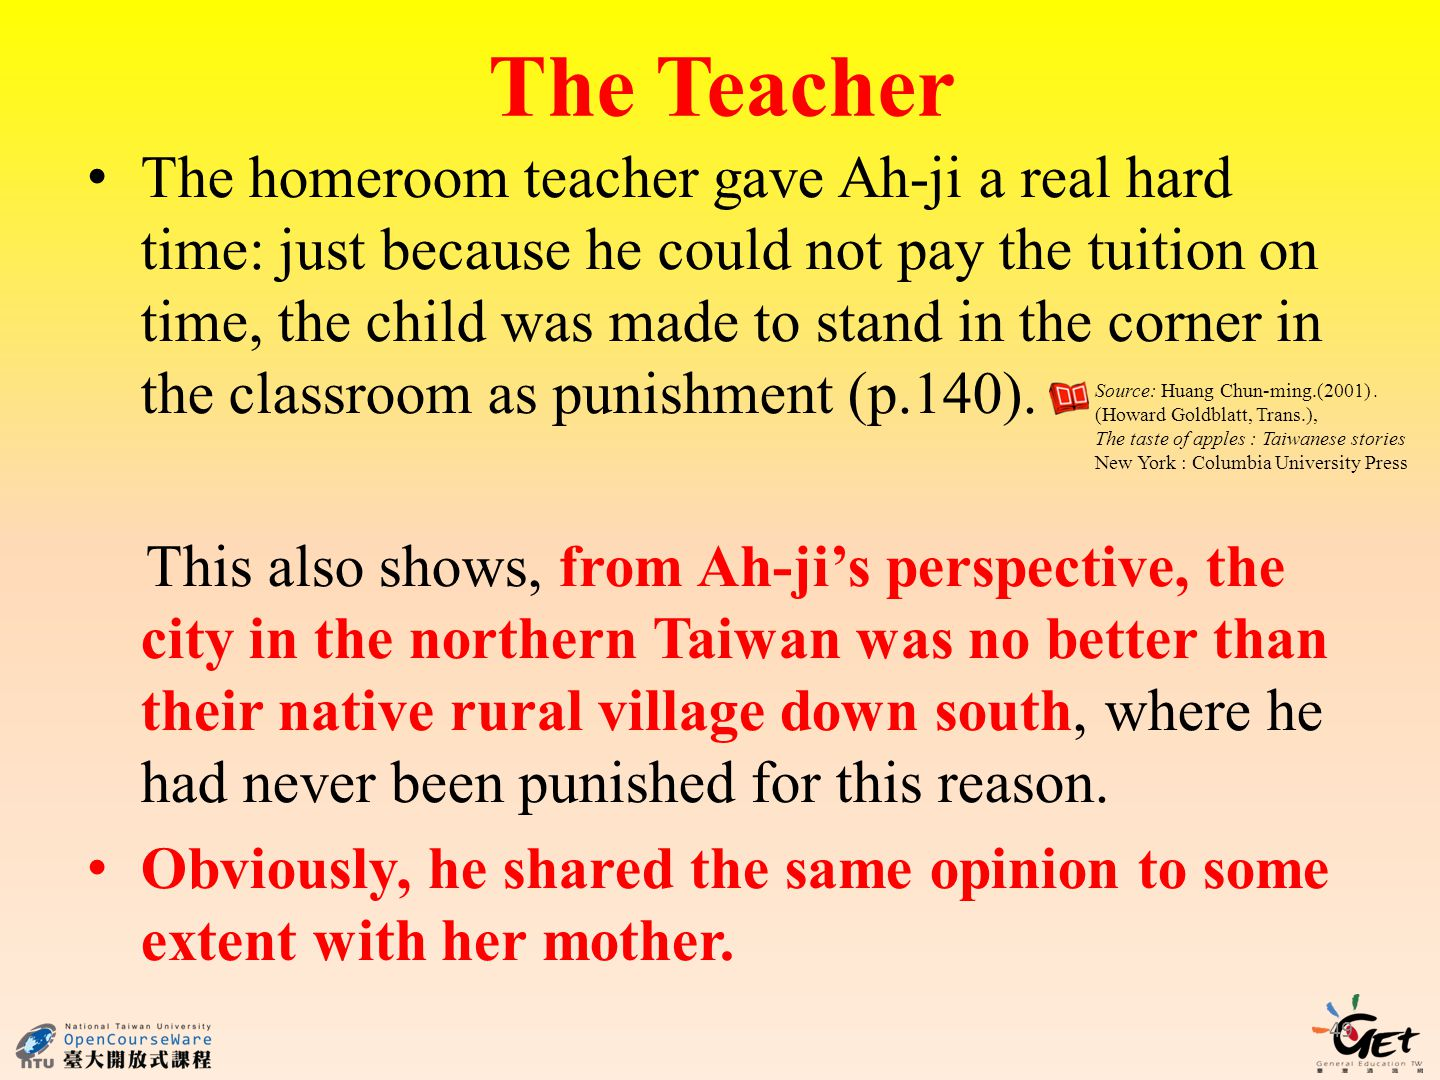 The Teacher The homeroom teacher gave Ah-ji a real hard time: just because he could not pay the tuition on time, the child was made to stand in the corner in the classroom as punishment (p.140).